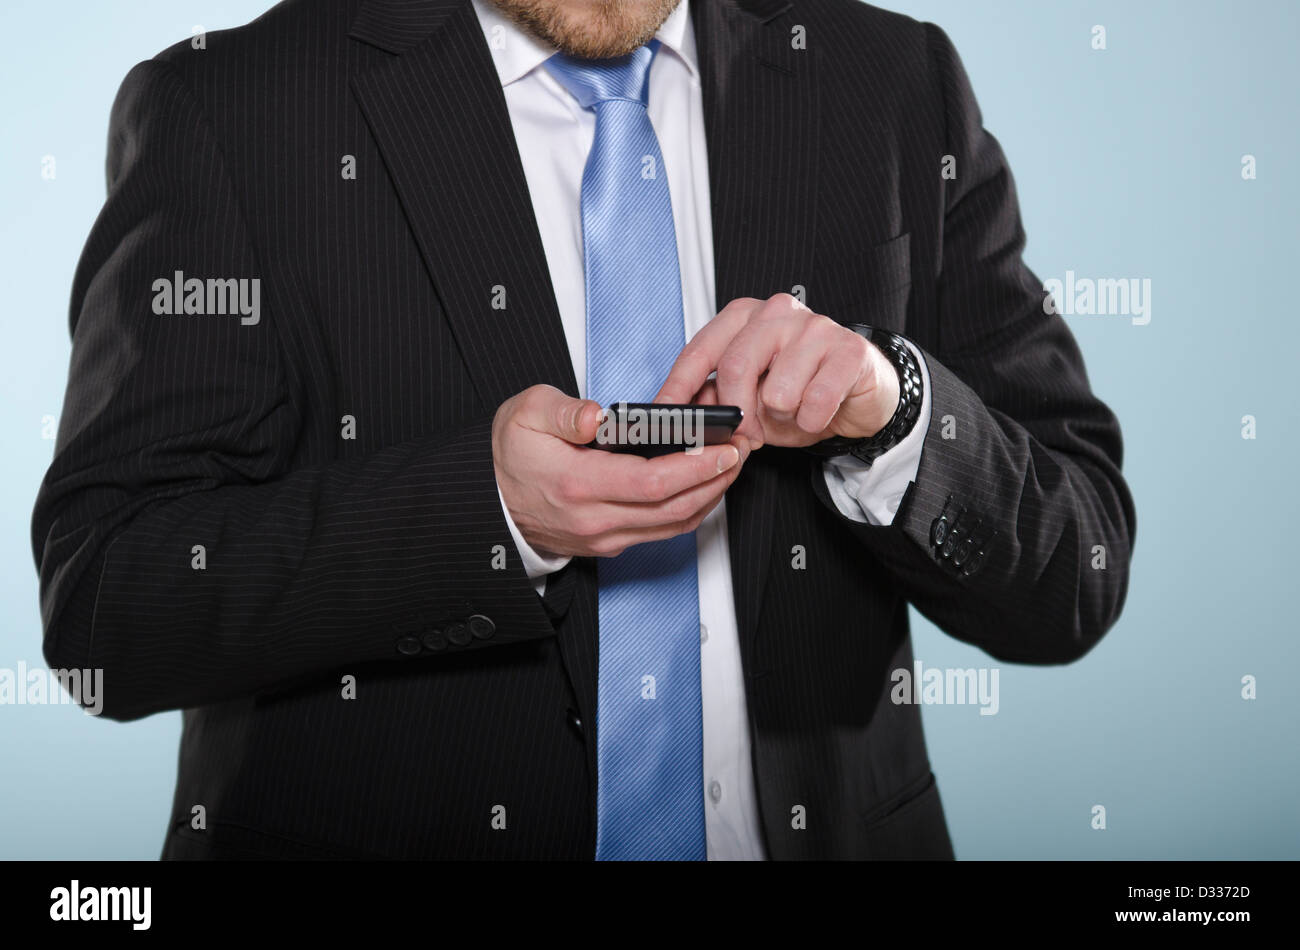 Businessman using smartphone. Middle section of casually suited man using a touch screen phone with his finger. - Stock Image